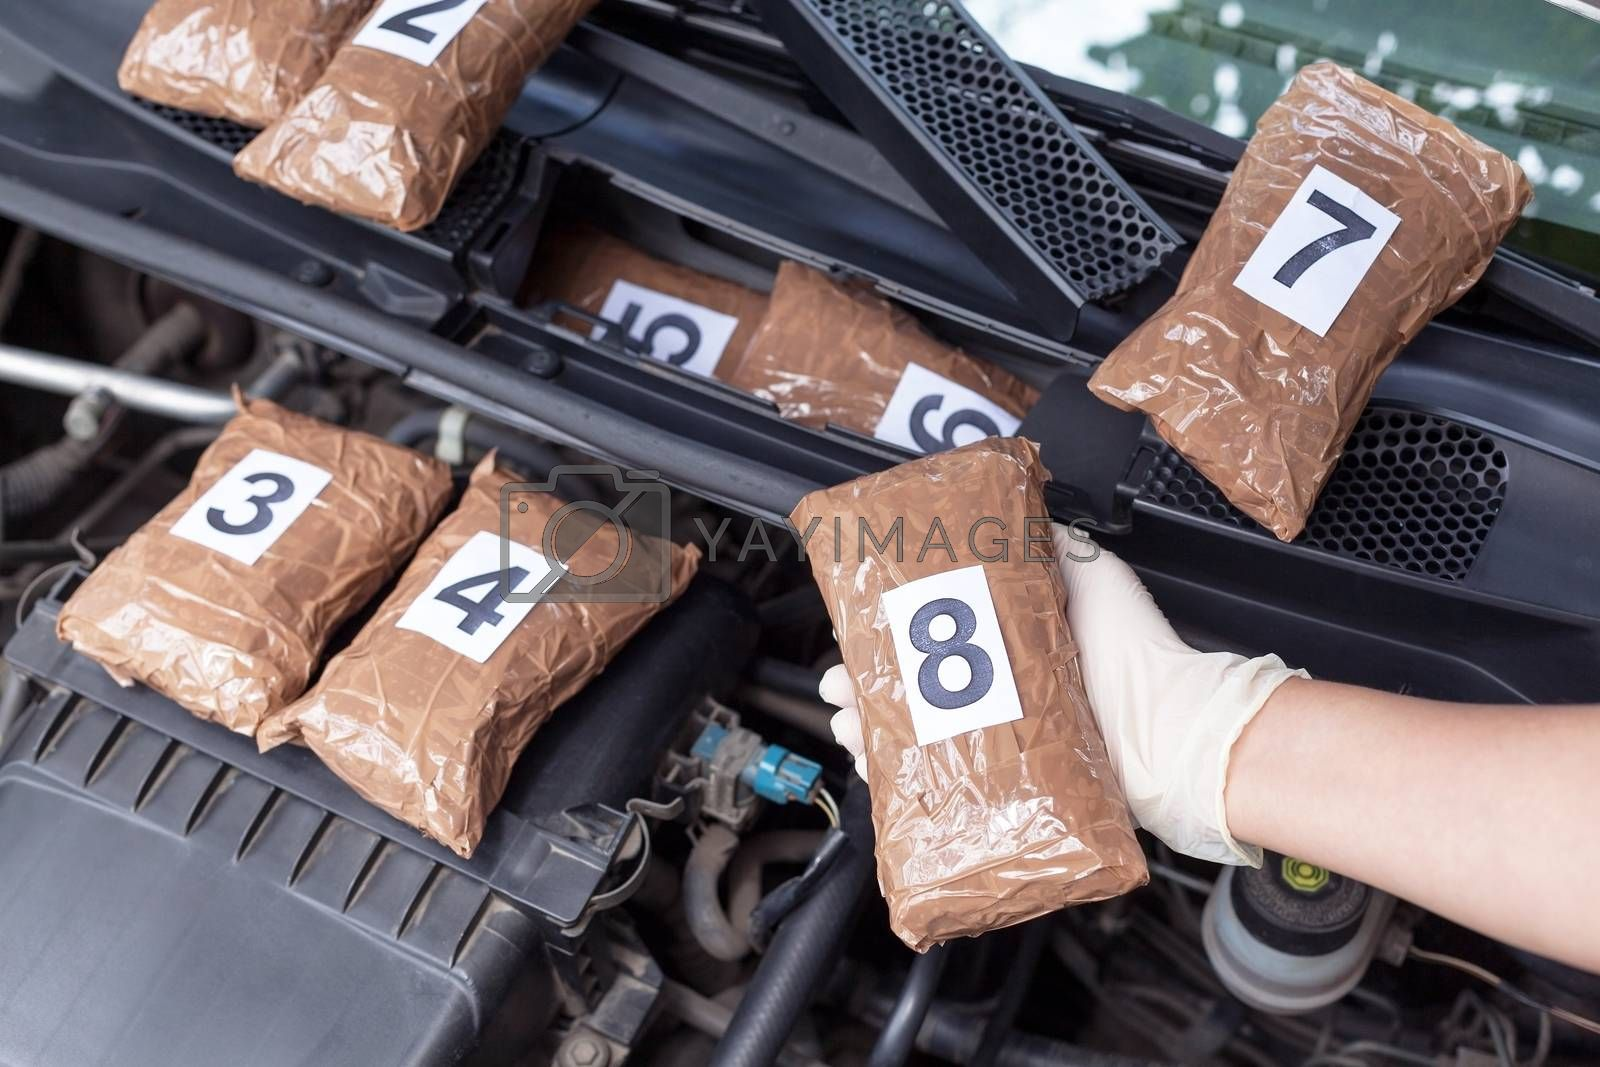 Police officer holding drug package discovered in engine compartment of a car